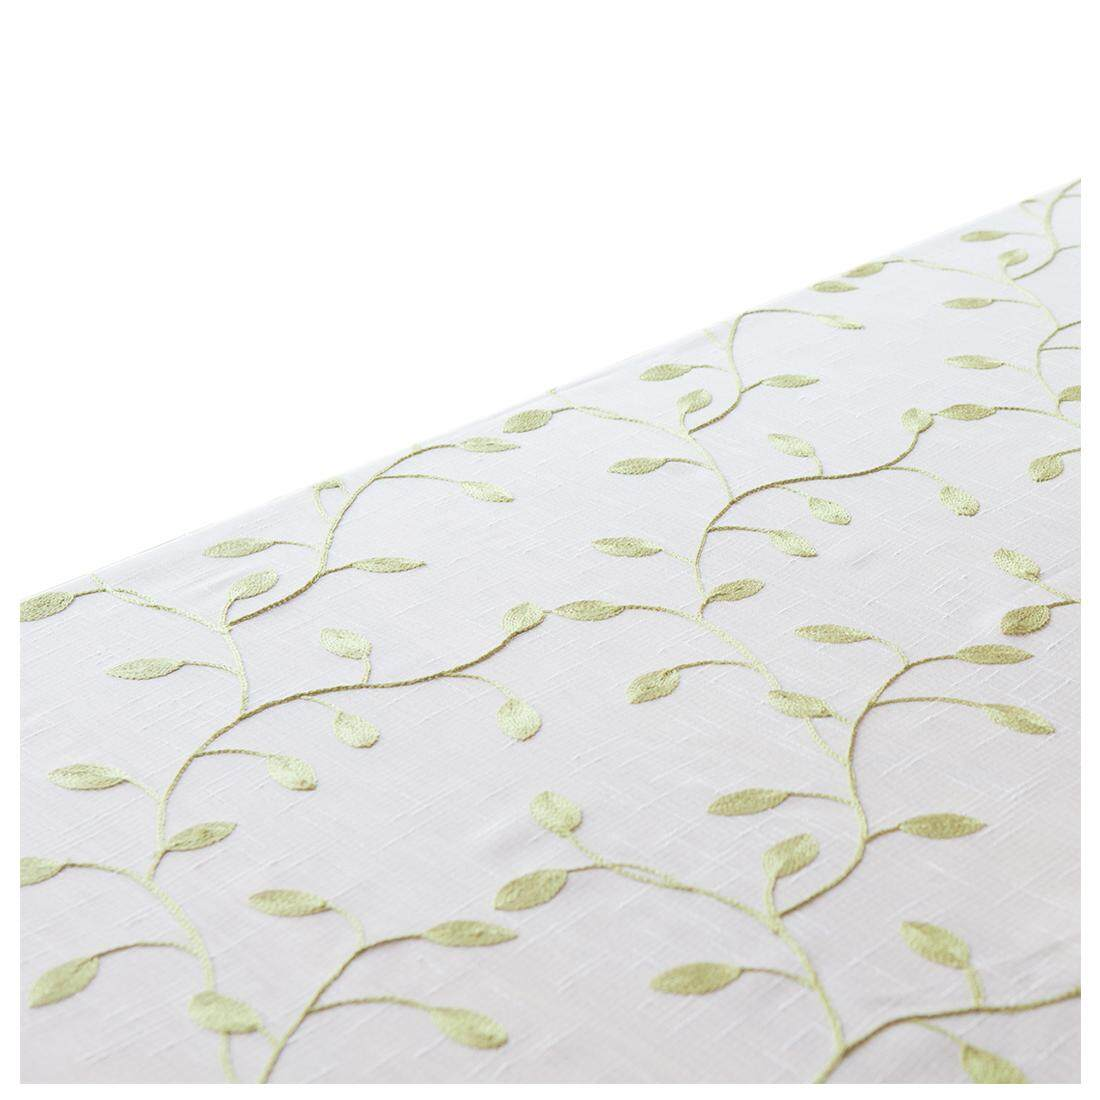 Polyester Tablecloth Leaf Table Cover for Dinner Kitchen White bottom green leaves, 90*90cm